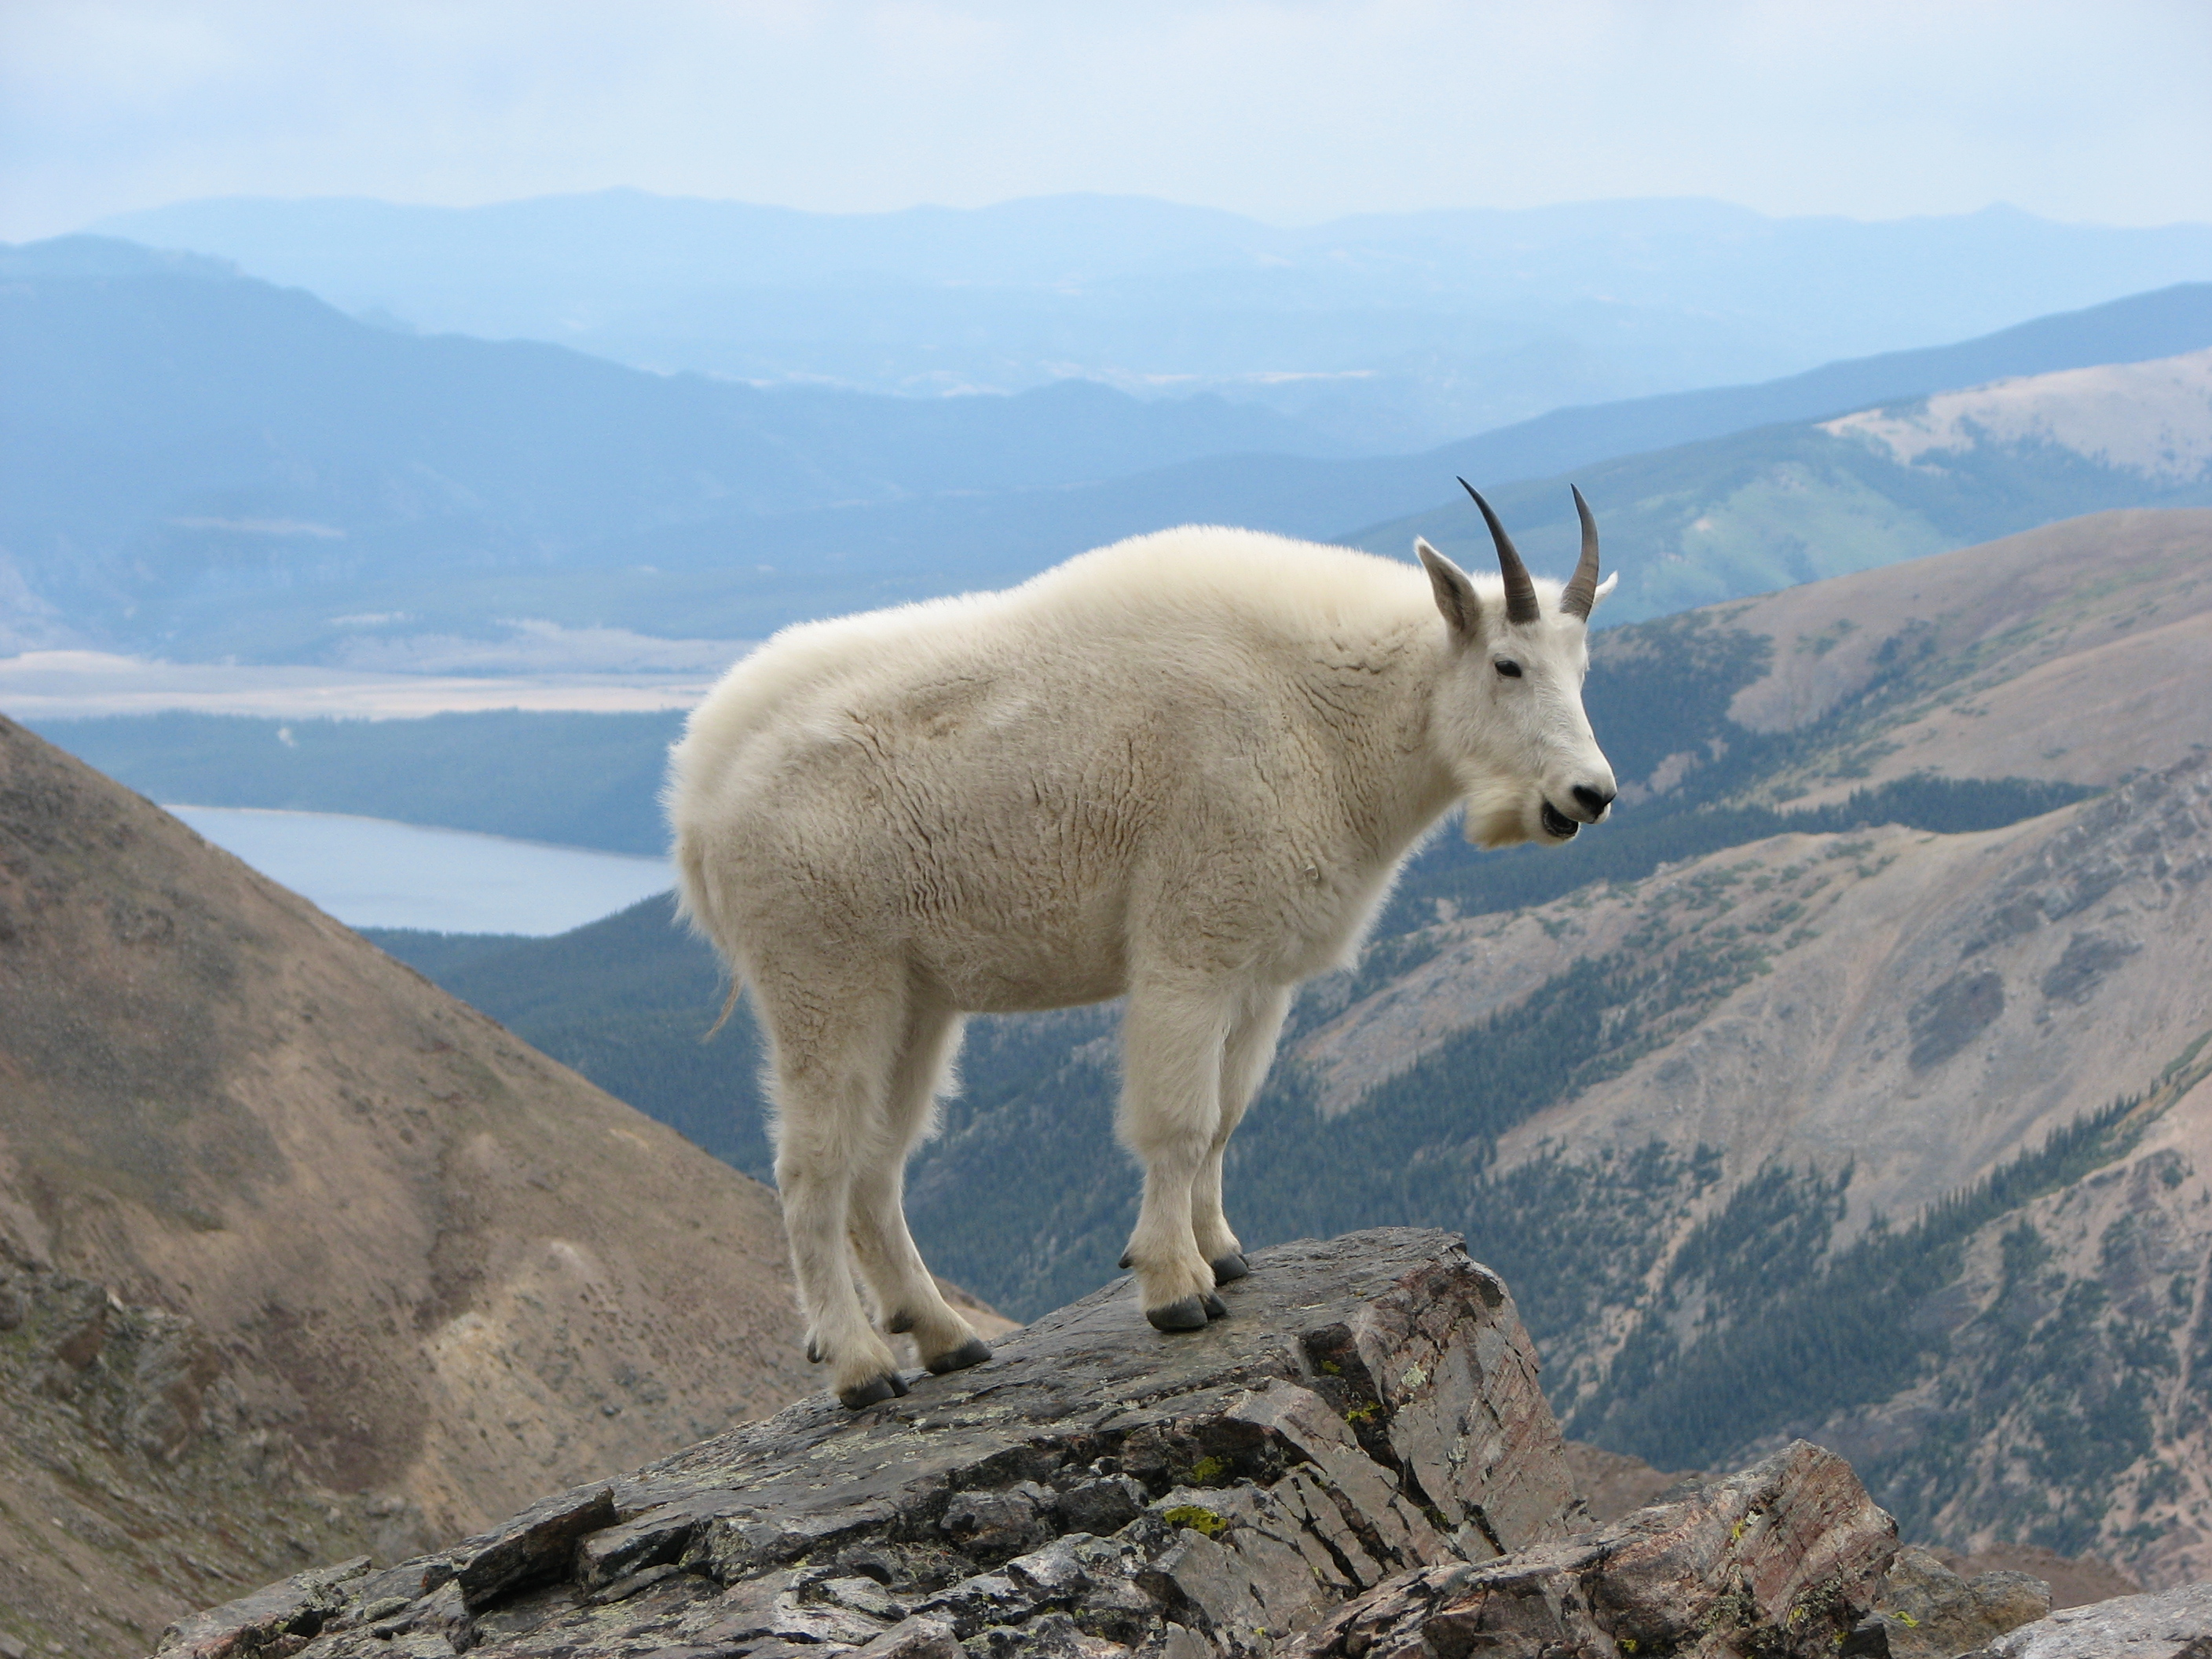 A strong mountain goat on top of Mount Massive